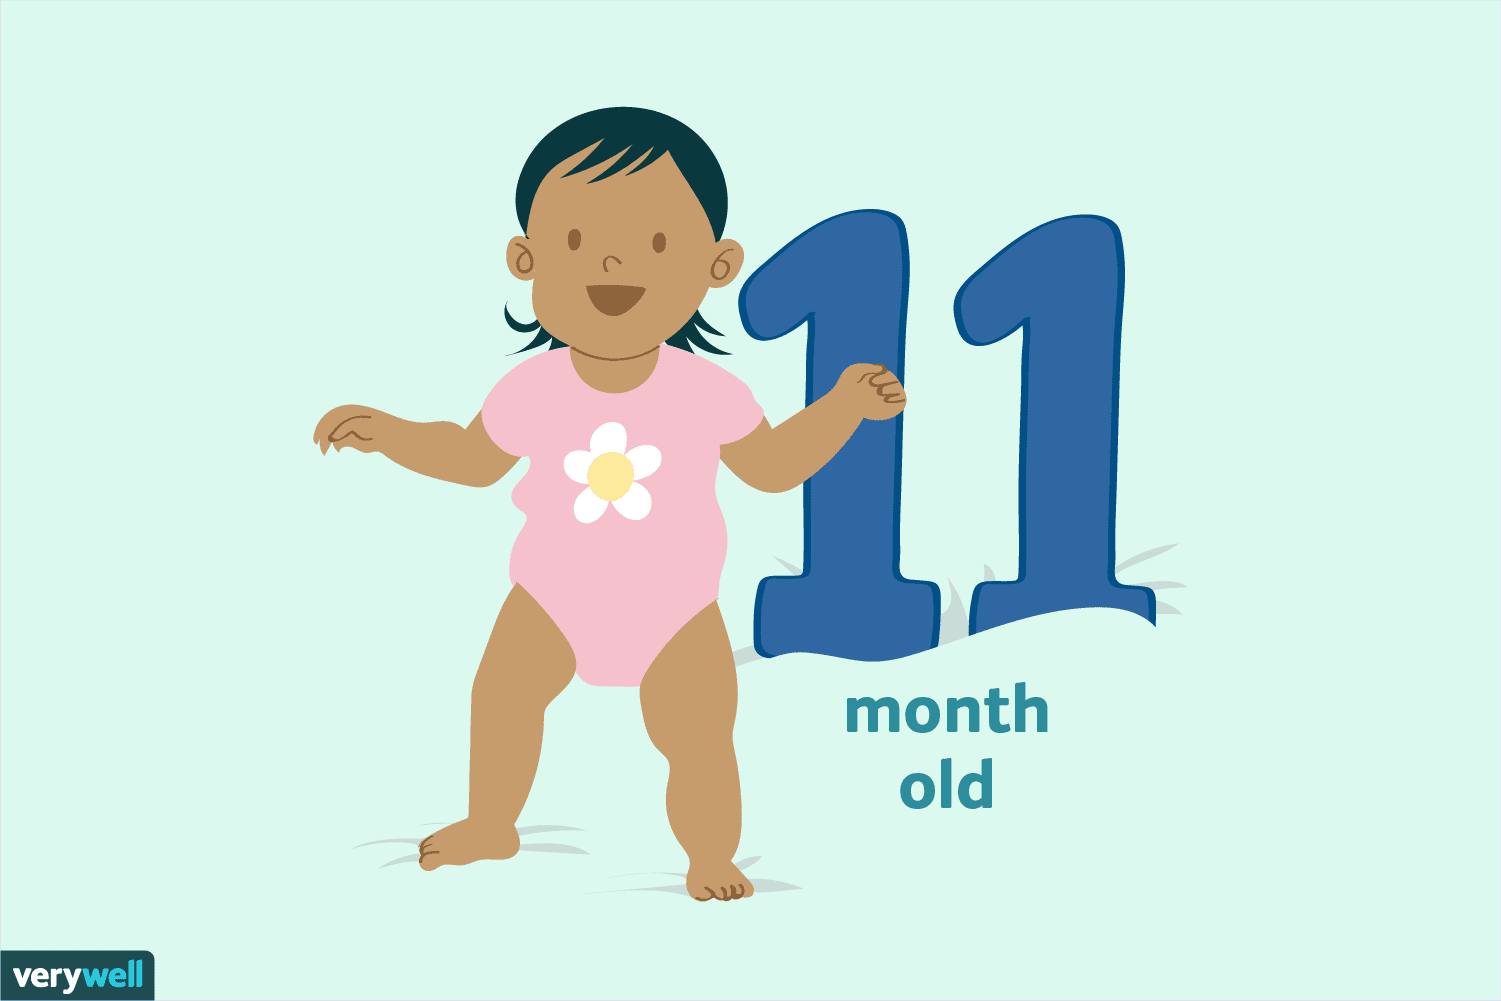 1 month old clipart clipart images gallery for free download.